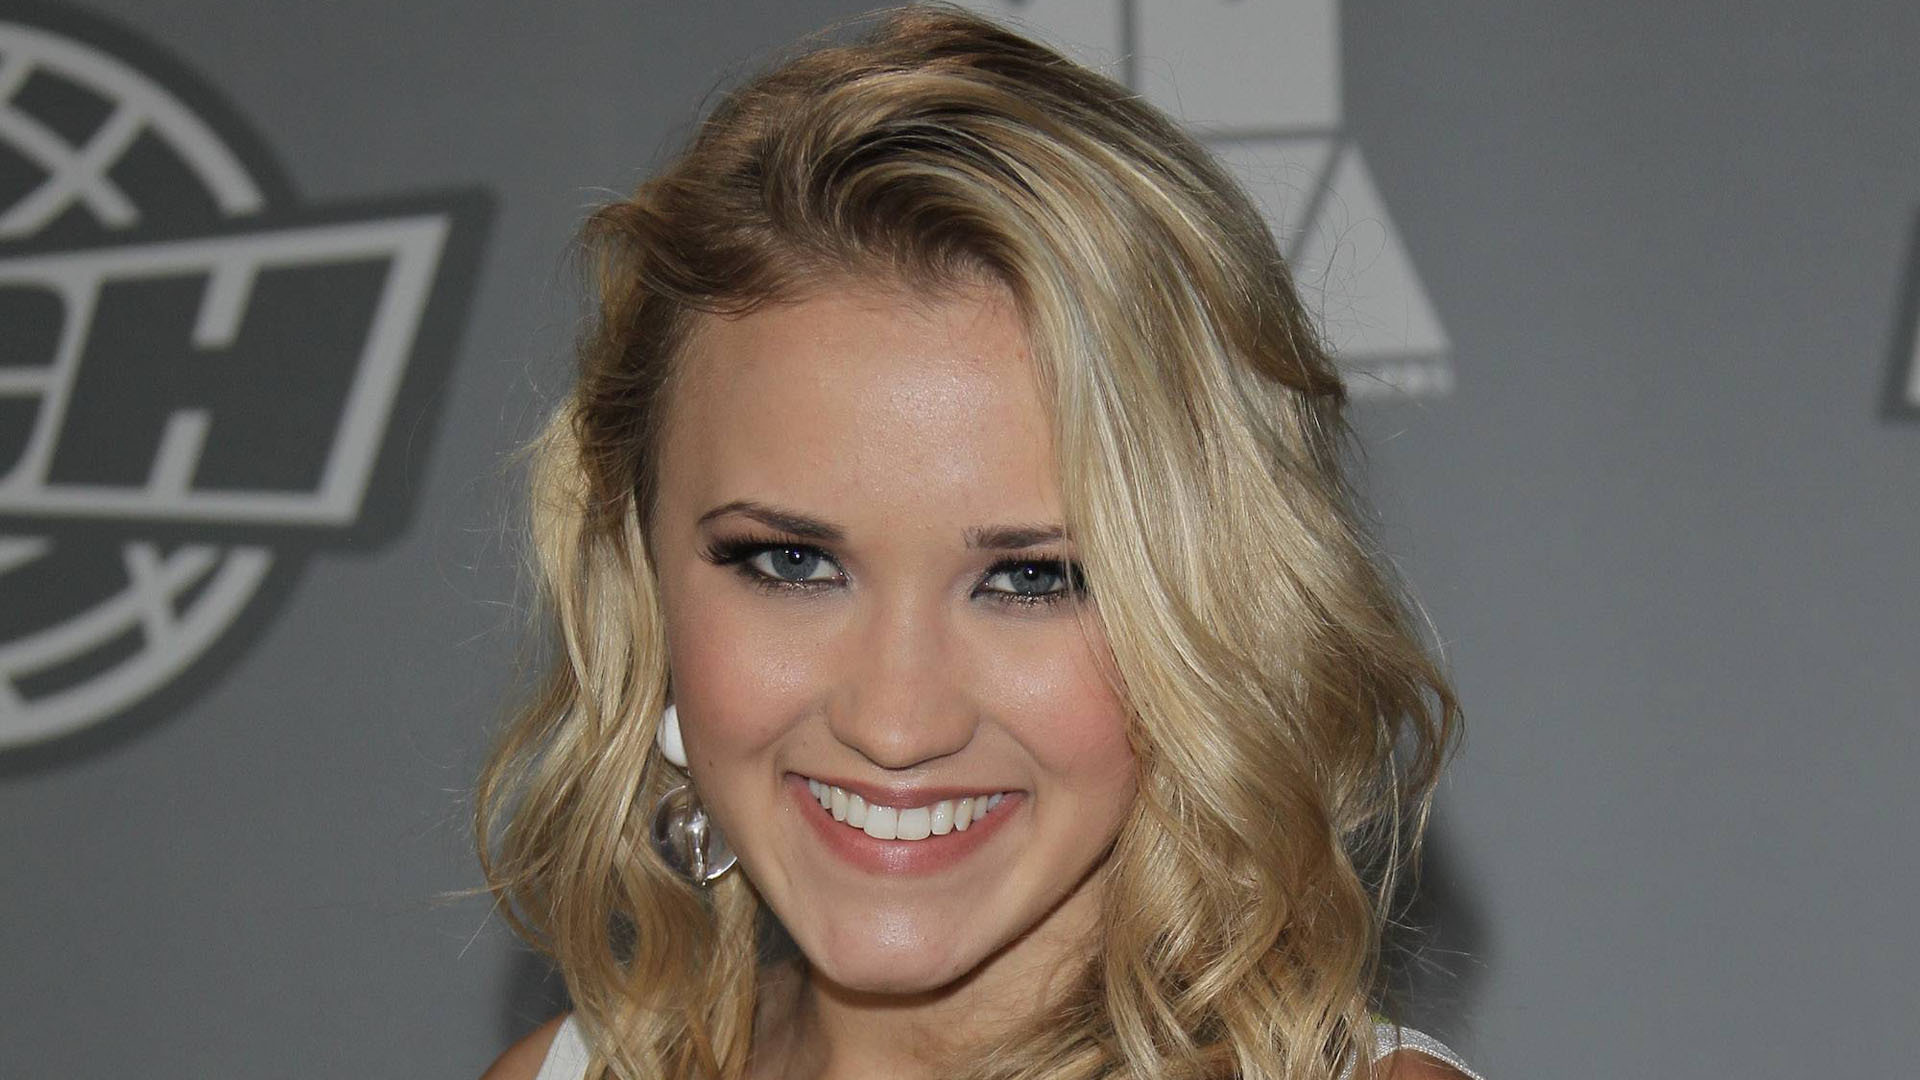 Emily Osment Computer Backgrounds